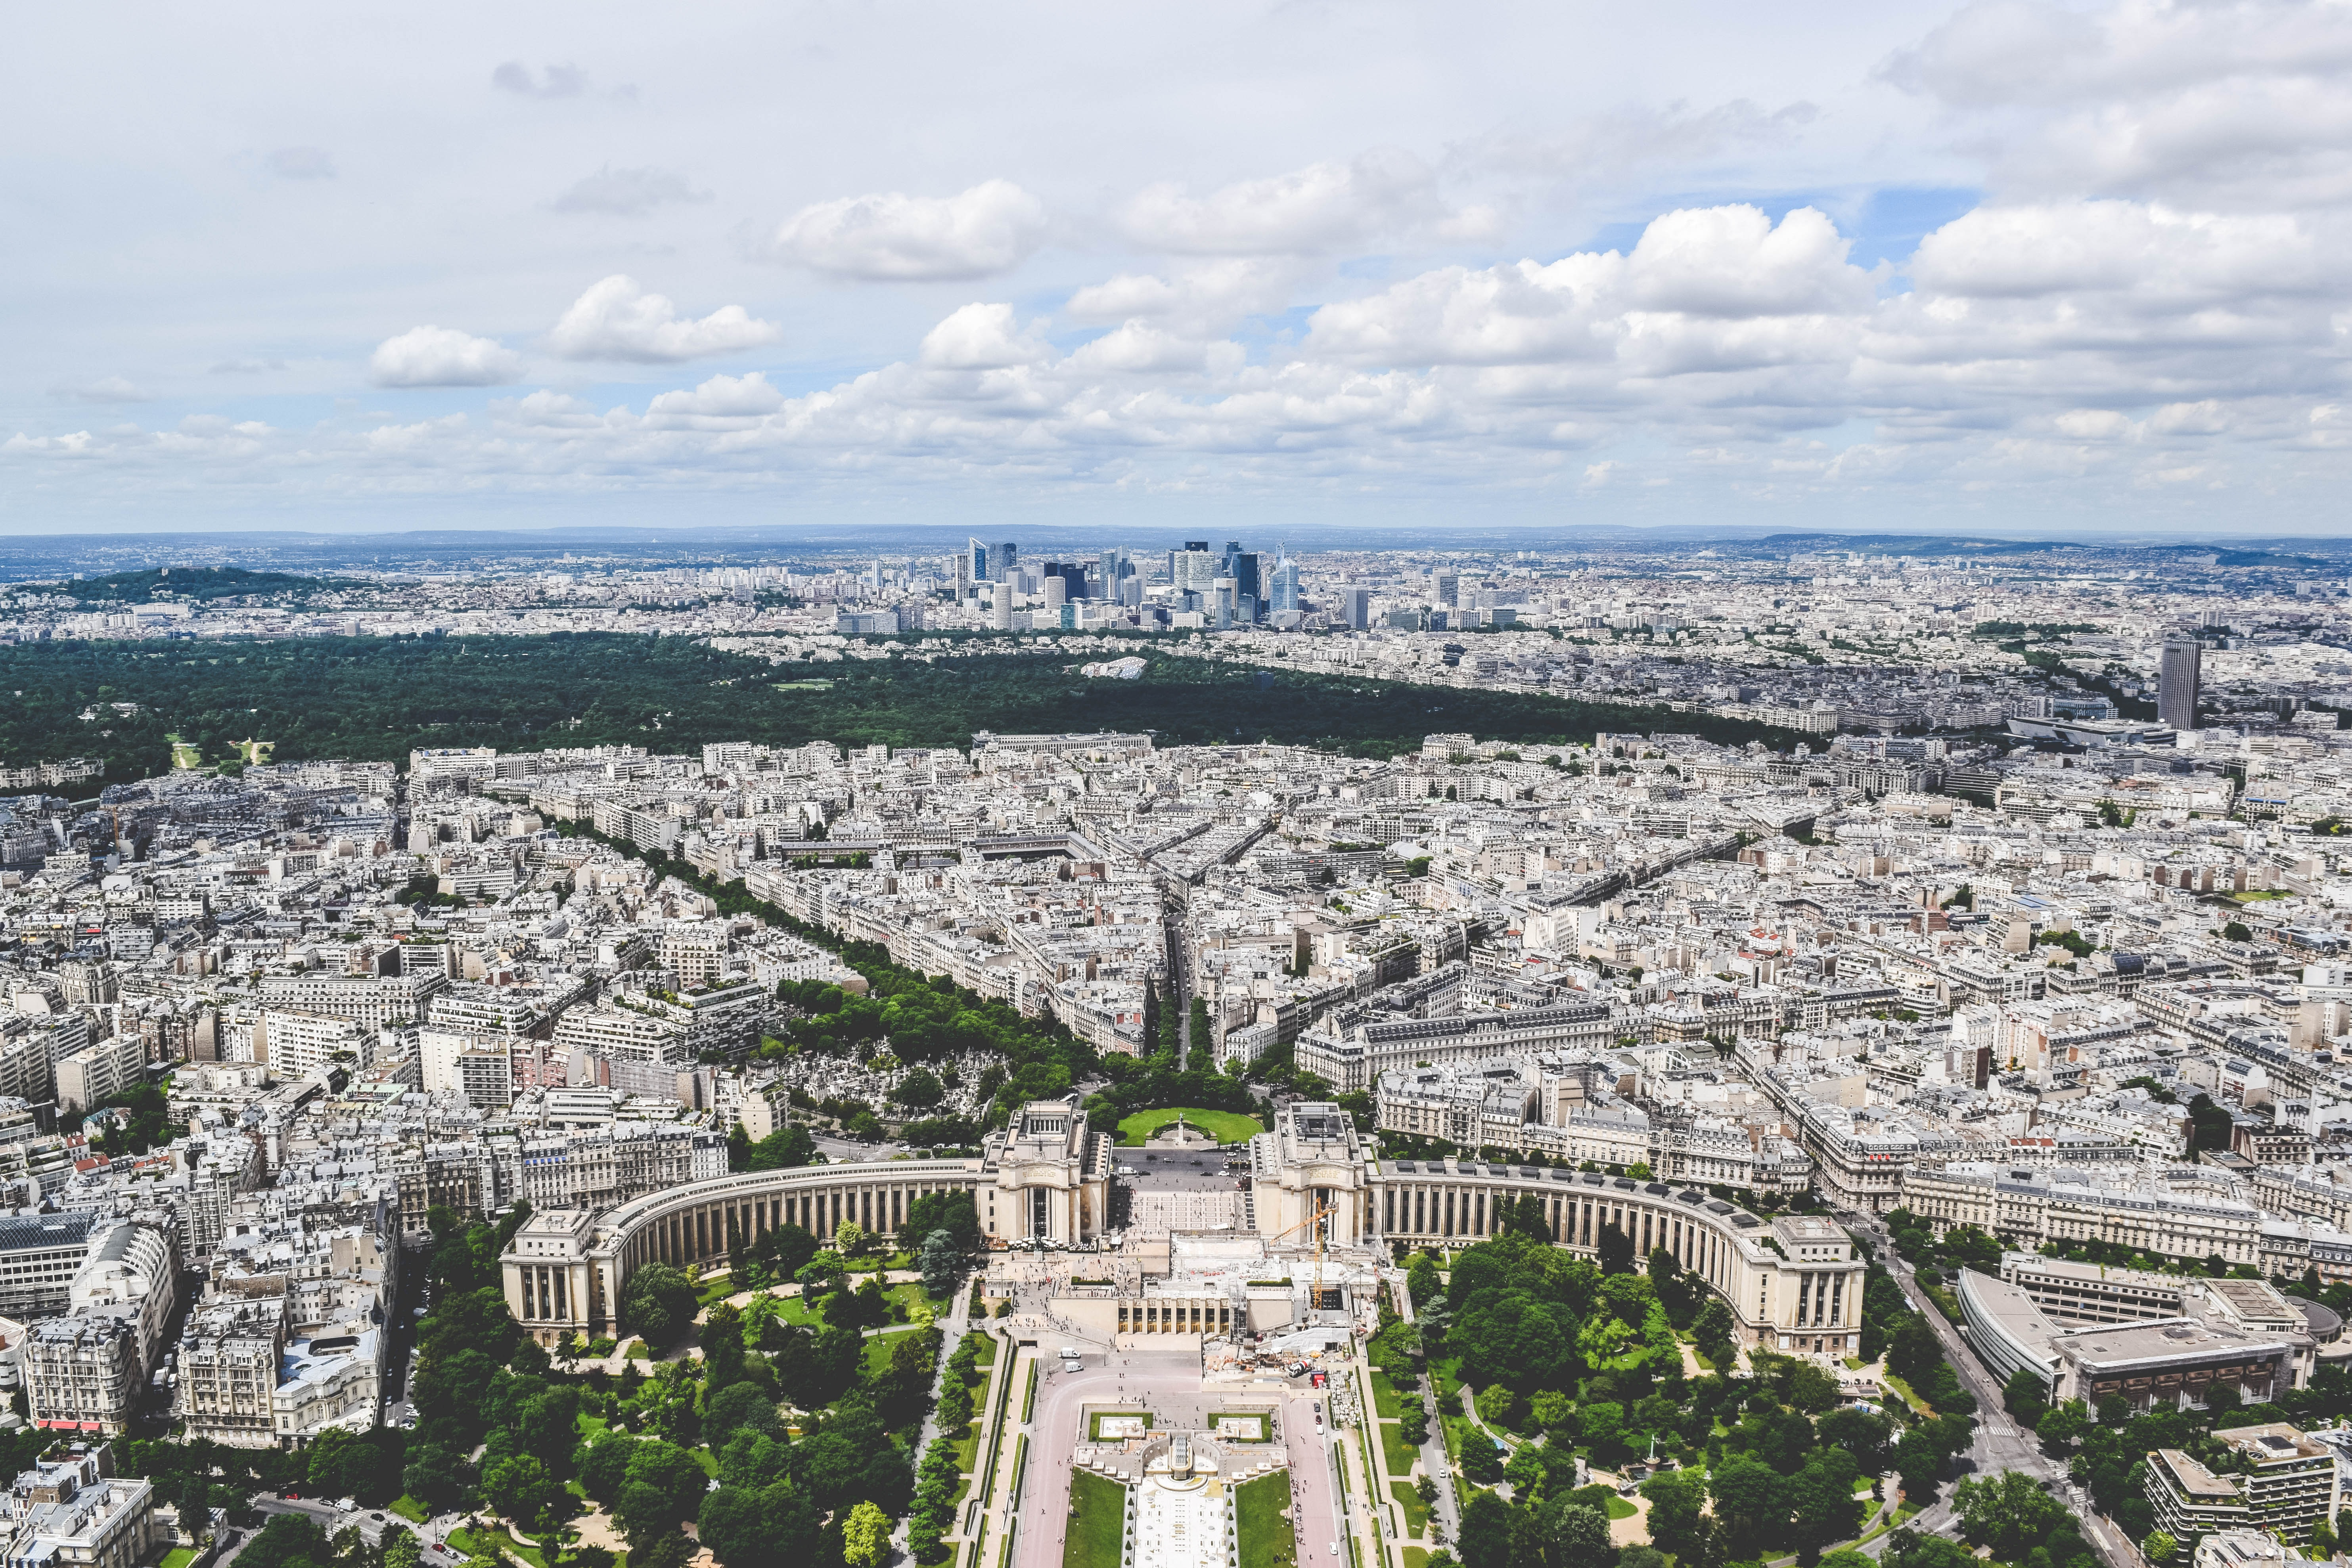 An aerial view of Place du Trocadéro in Paris taken from the Eiffel Tower